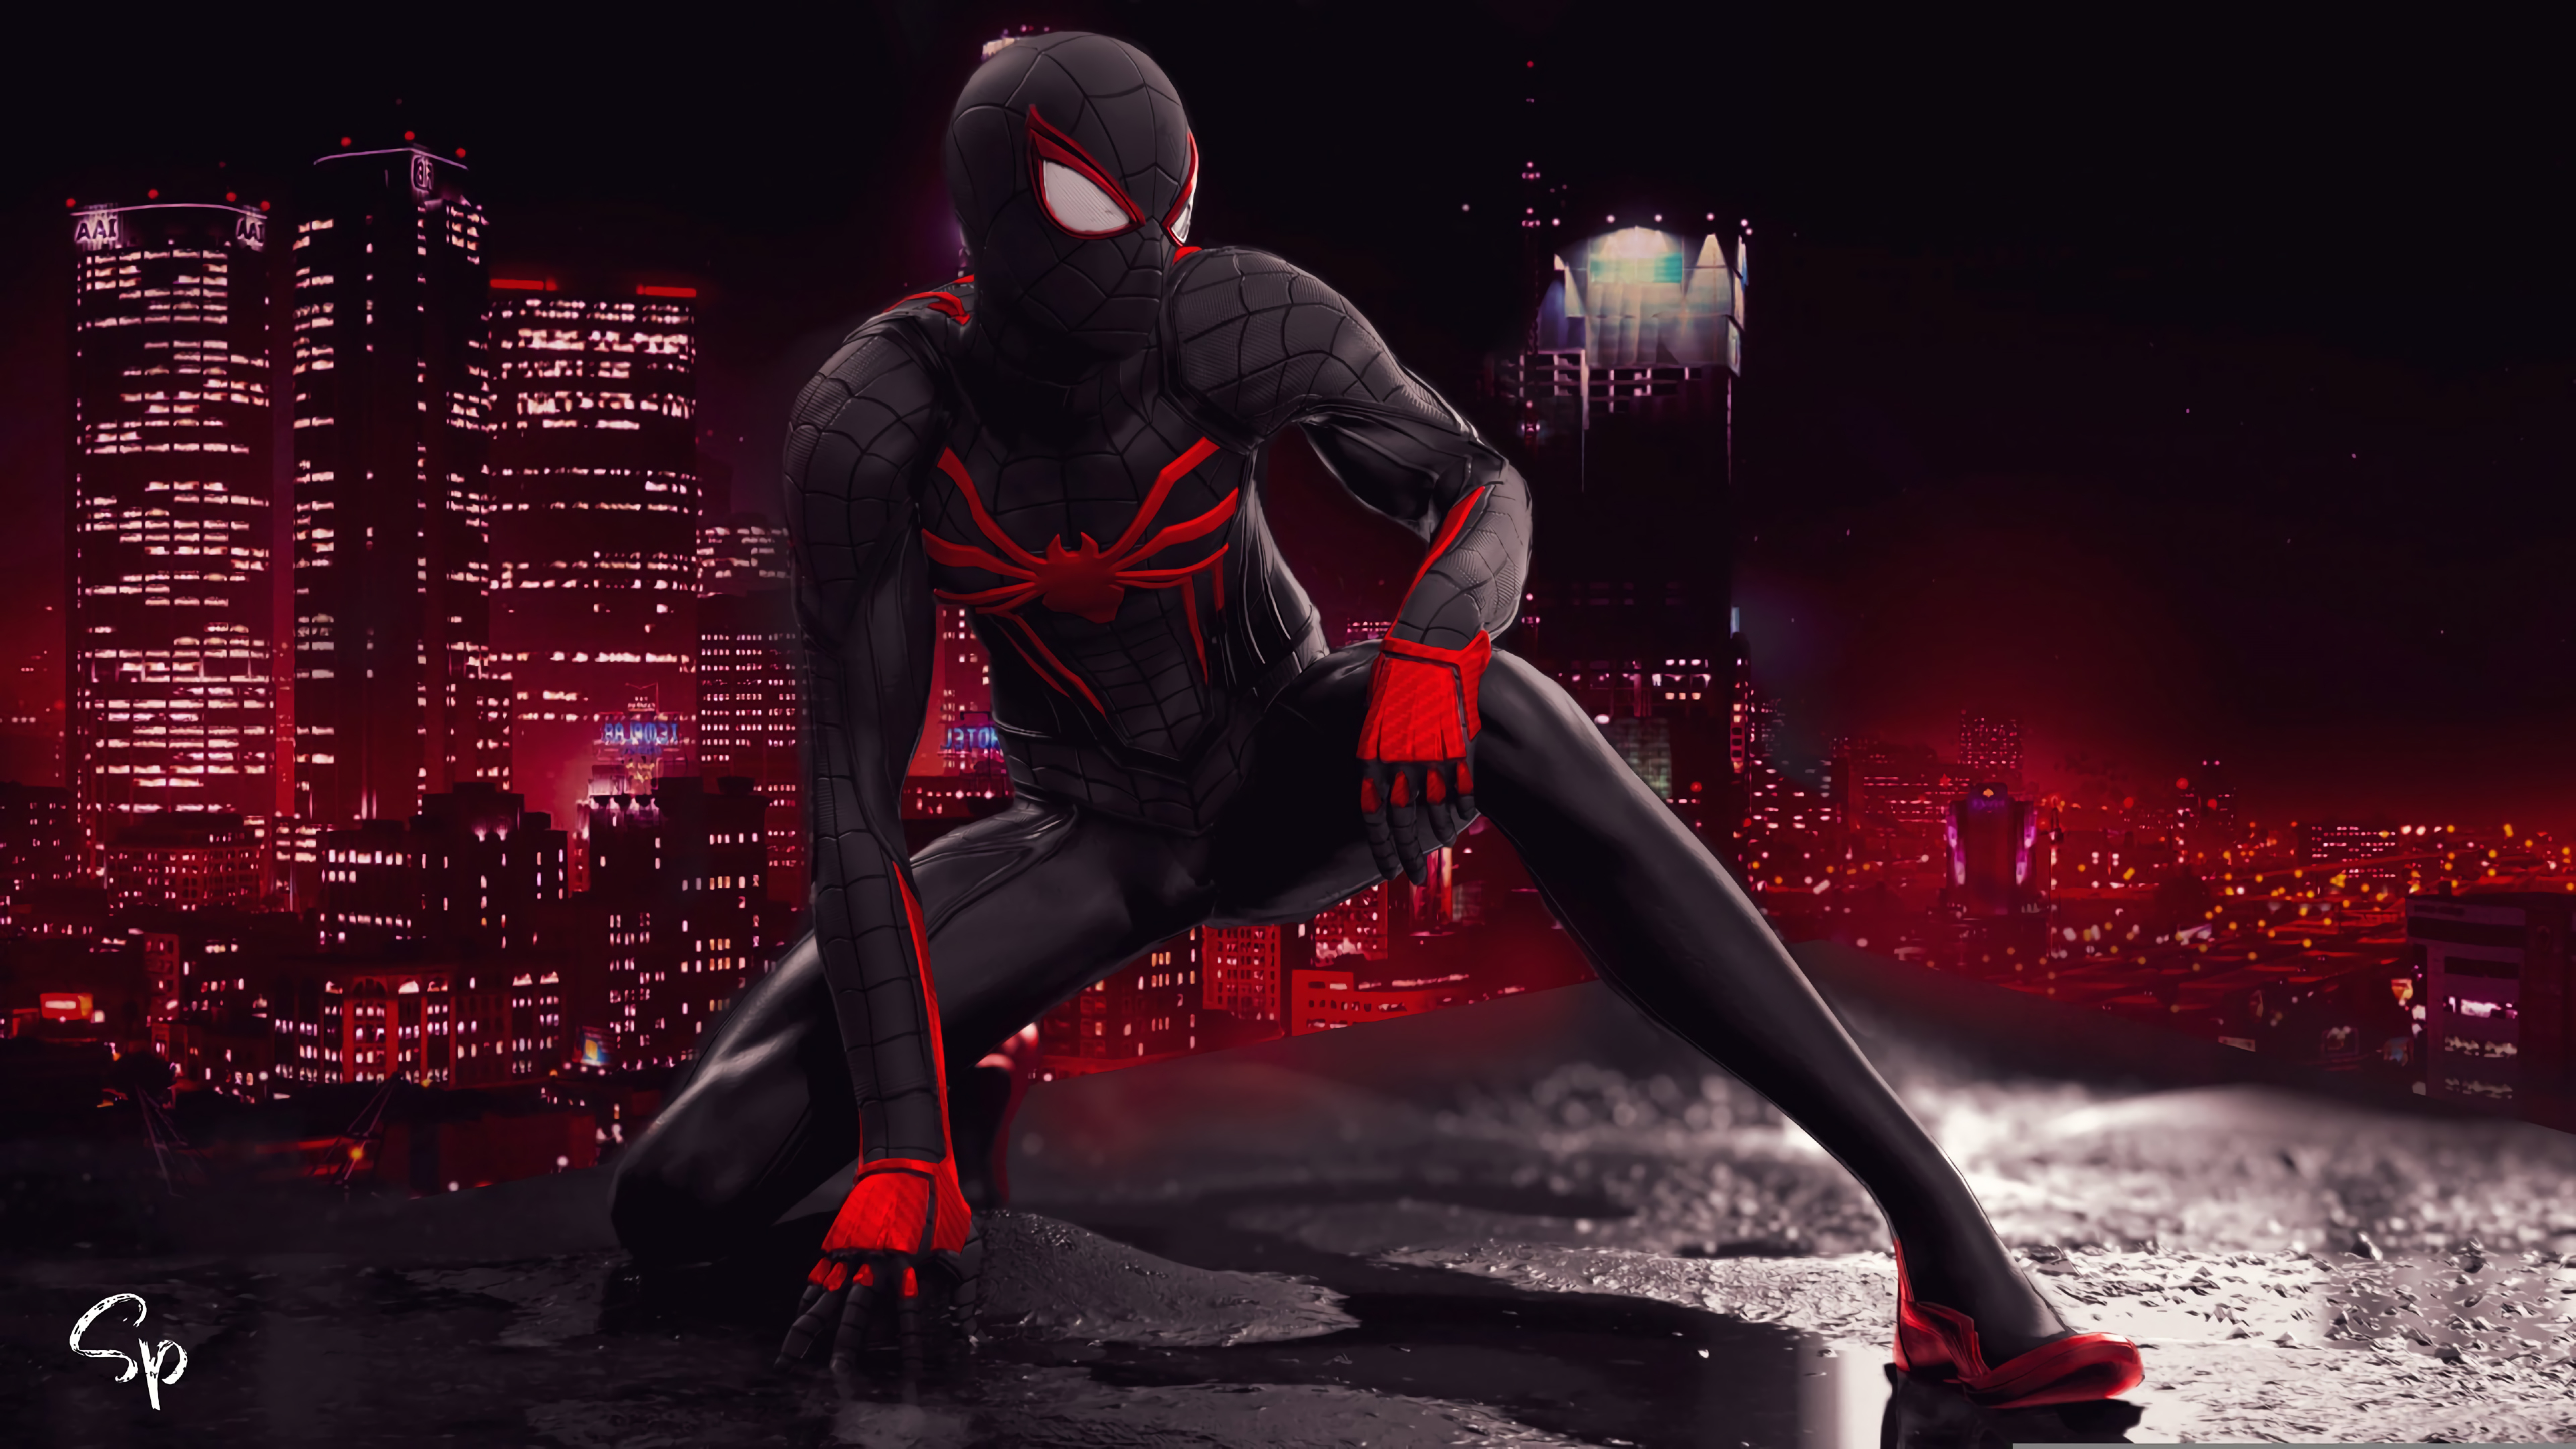 5120x2880 Spider Man Red And Black Suit Art 5K Wallpaper ...